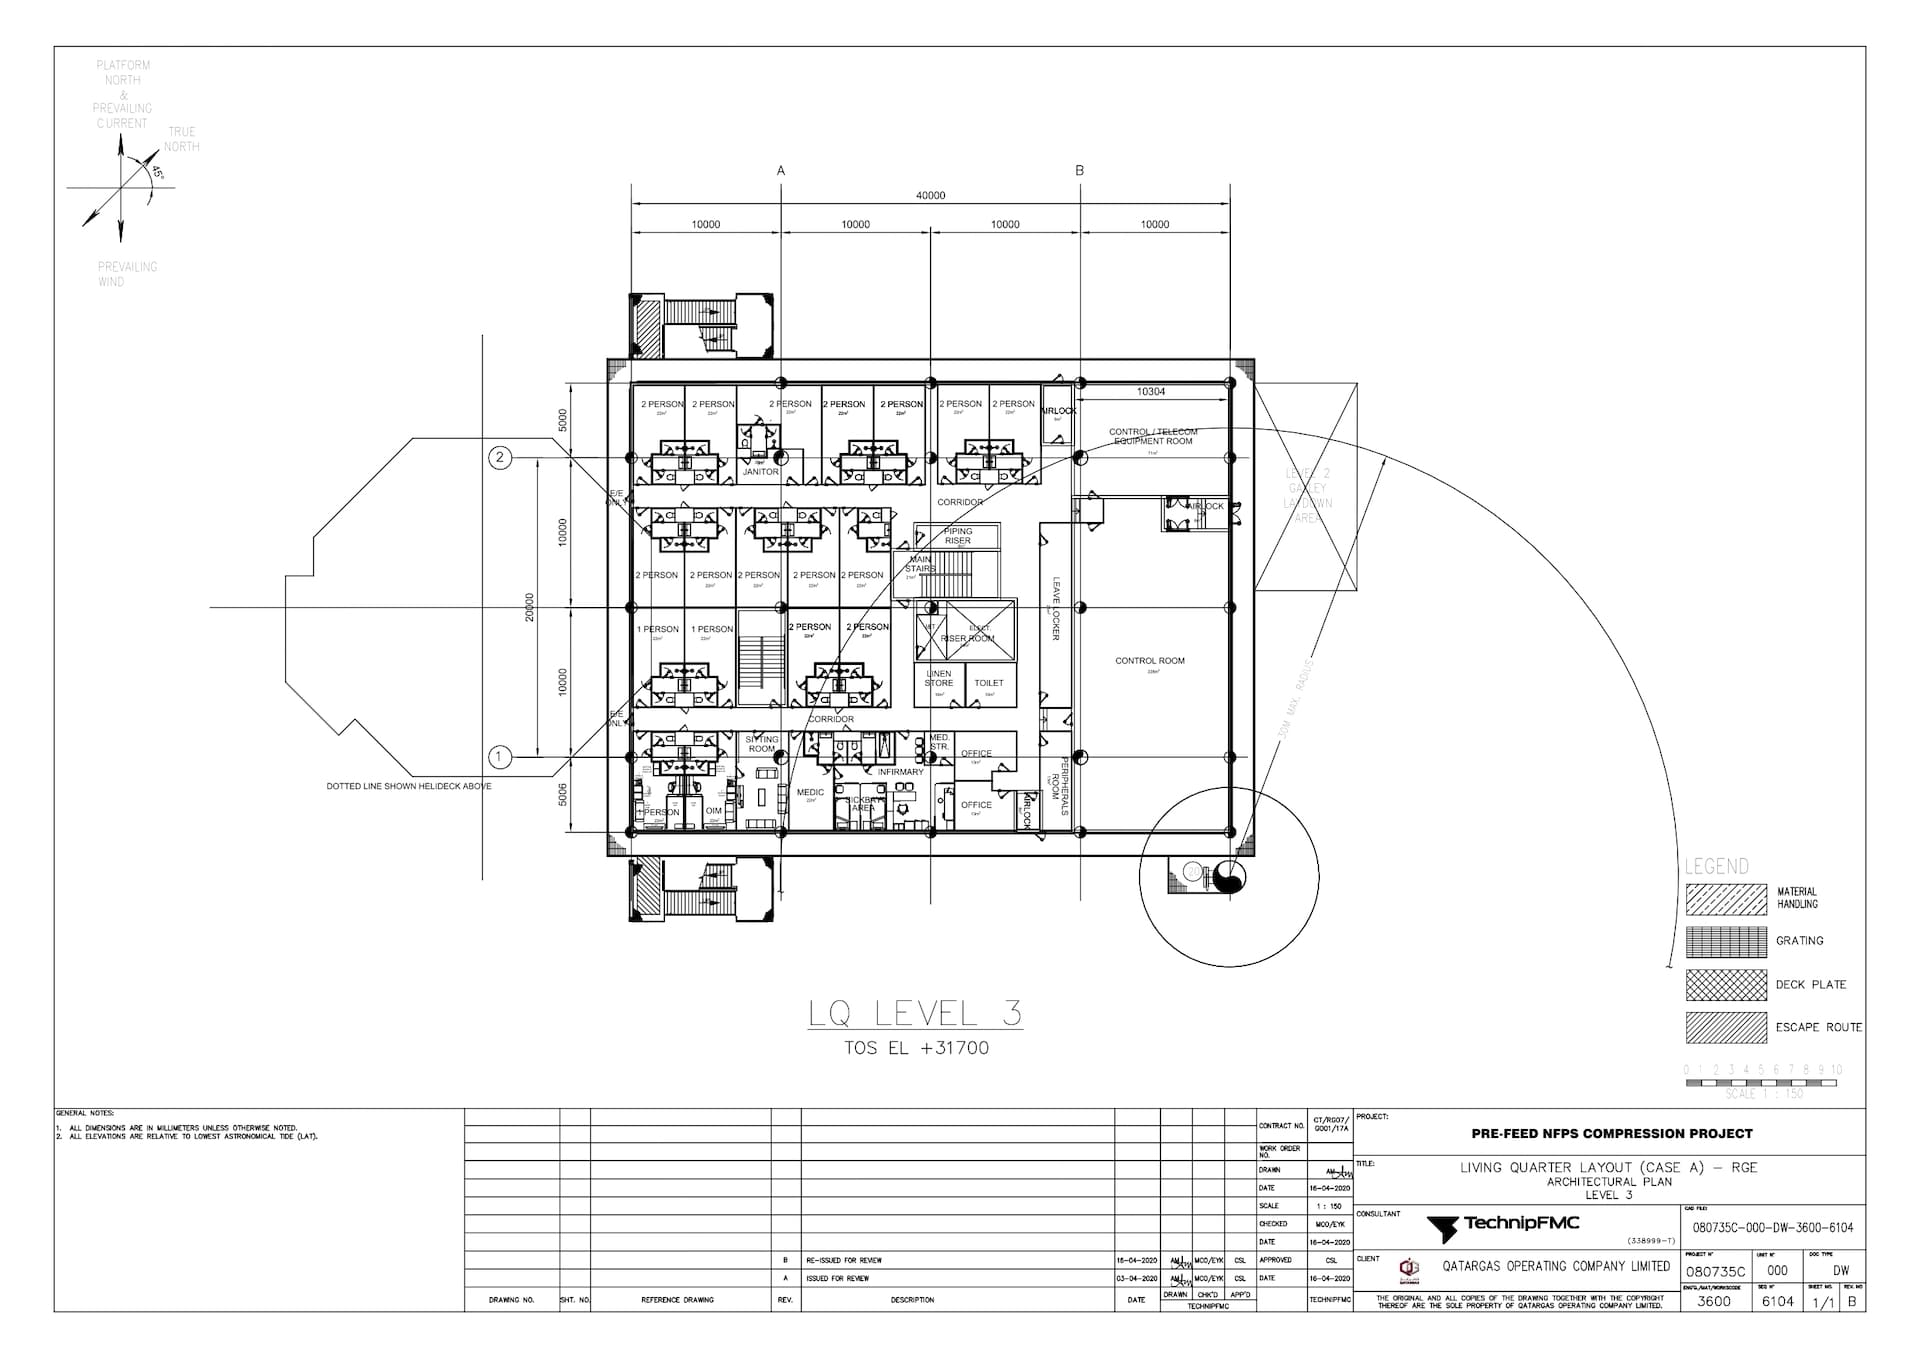 PRE-FEED-NFPS-080735C-000-DW-3600-6104_Rev B LQ Layout (Case A) - RGE - Architectural Plan - Level 3_page-0001